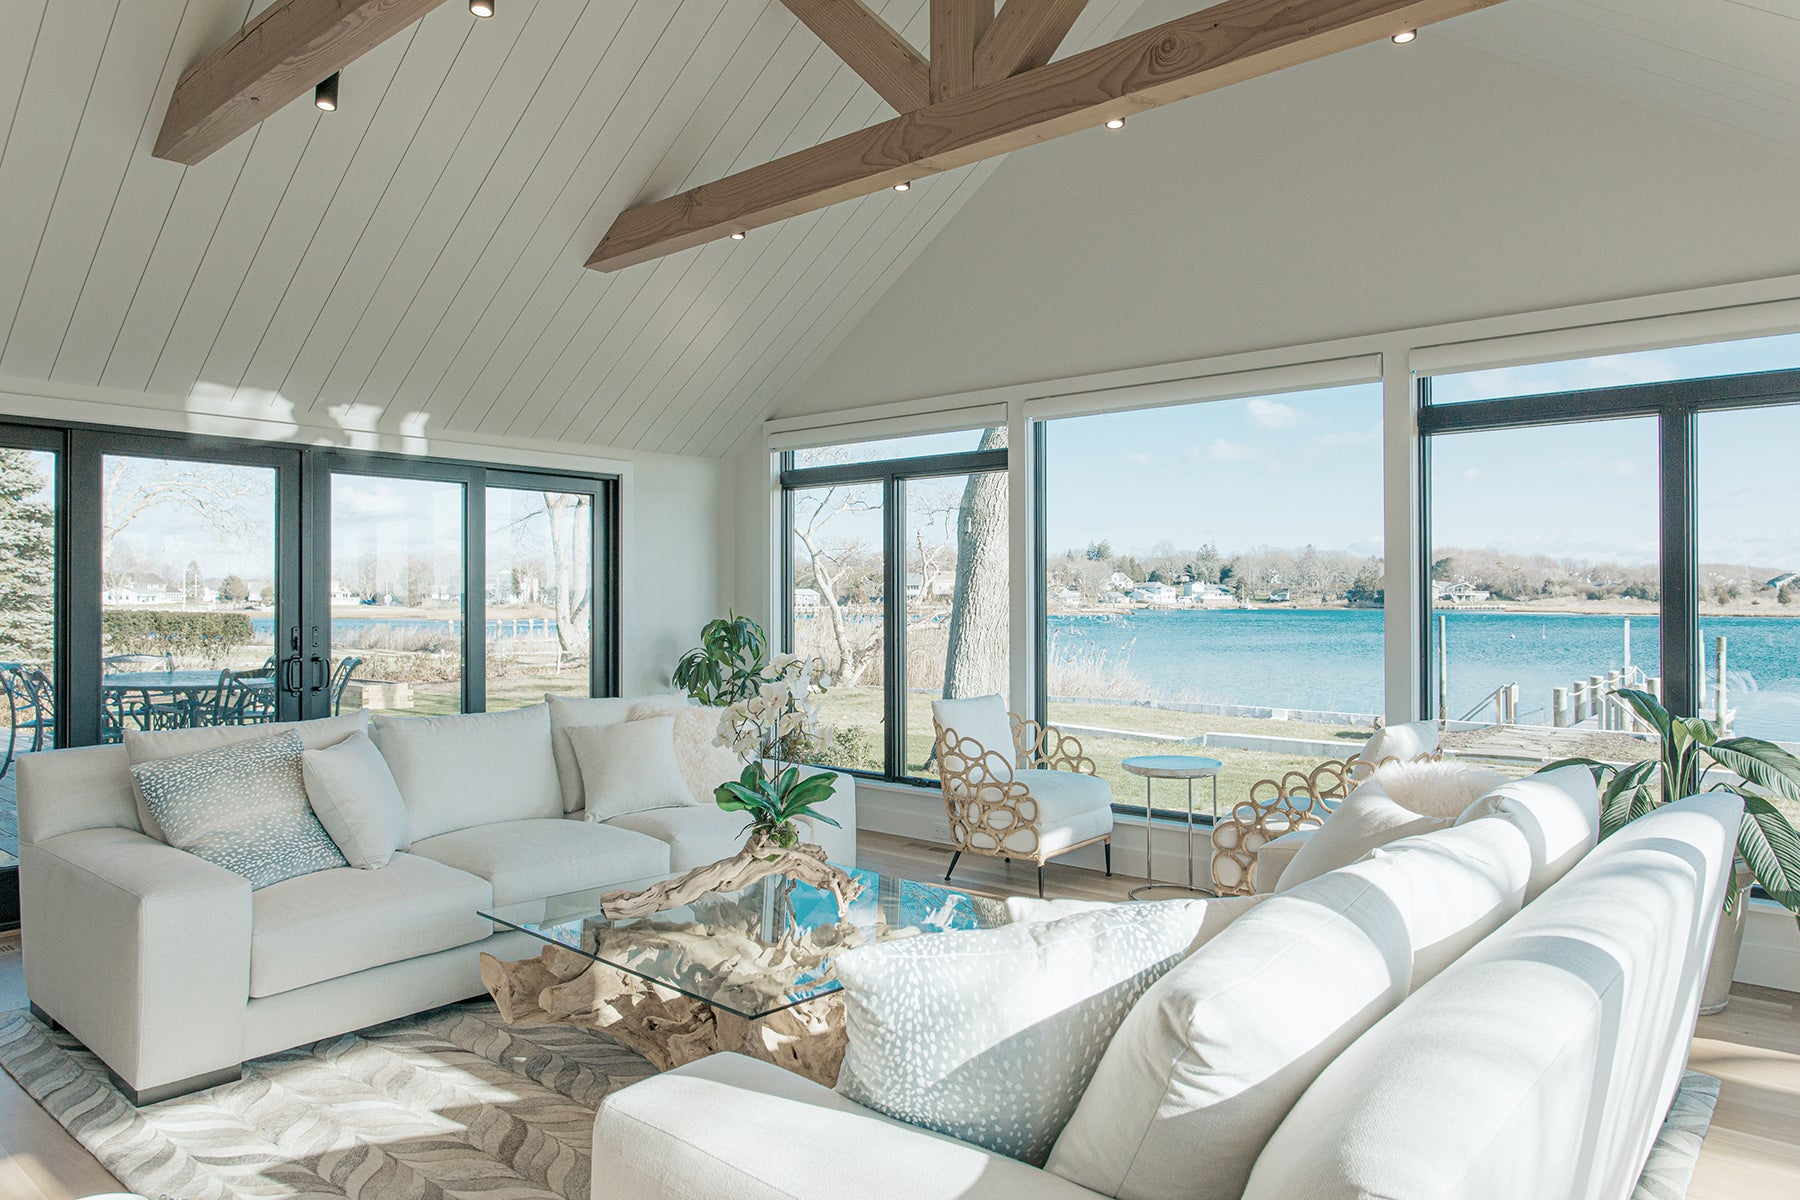 Ocean Blu Designs - Modern Coastal and Transitional Designs for New York, Long Island, Connecticut, Hamptons, and Florida. Interior Designers